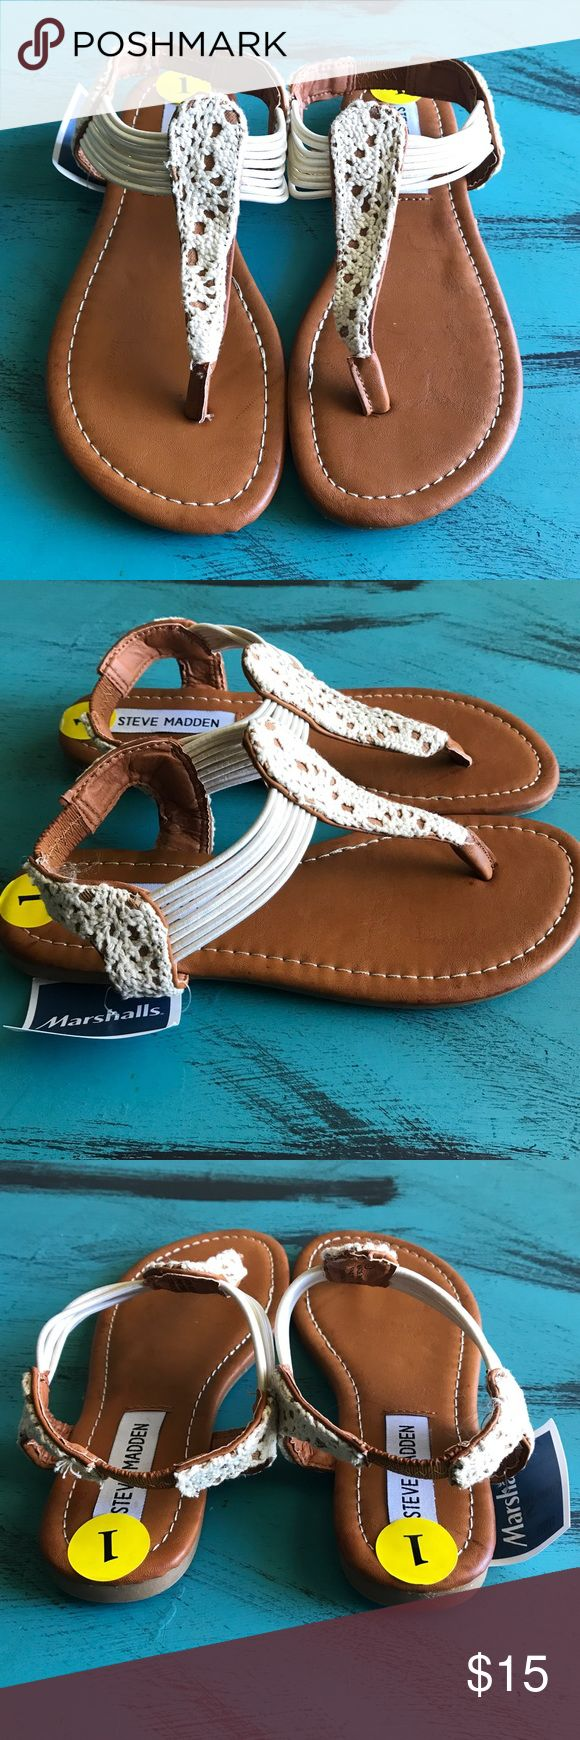 Steve Madden Demi Wedge Stretch Sandals Sz 1 New with tags. Lace t-strap sandals feature stretchy tops and back for a perfect fit. Sandals can be dressed up or down. Super chic for summer bbqs or everyday wear. Girls Size 1. We are a pet and smoke free home. Steve Madden Shoes Sandals & Flip Flops